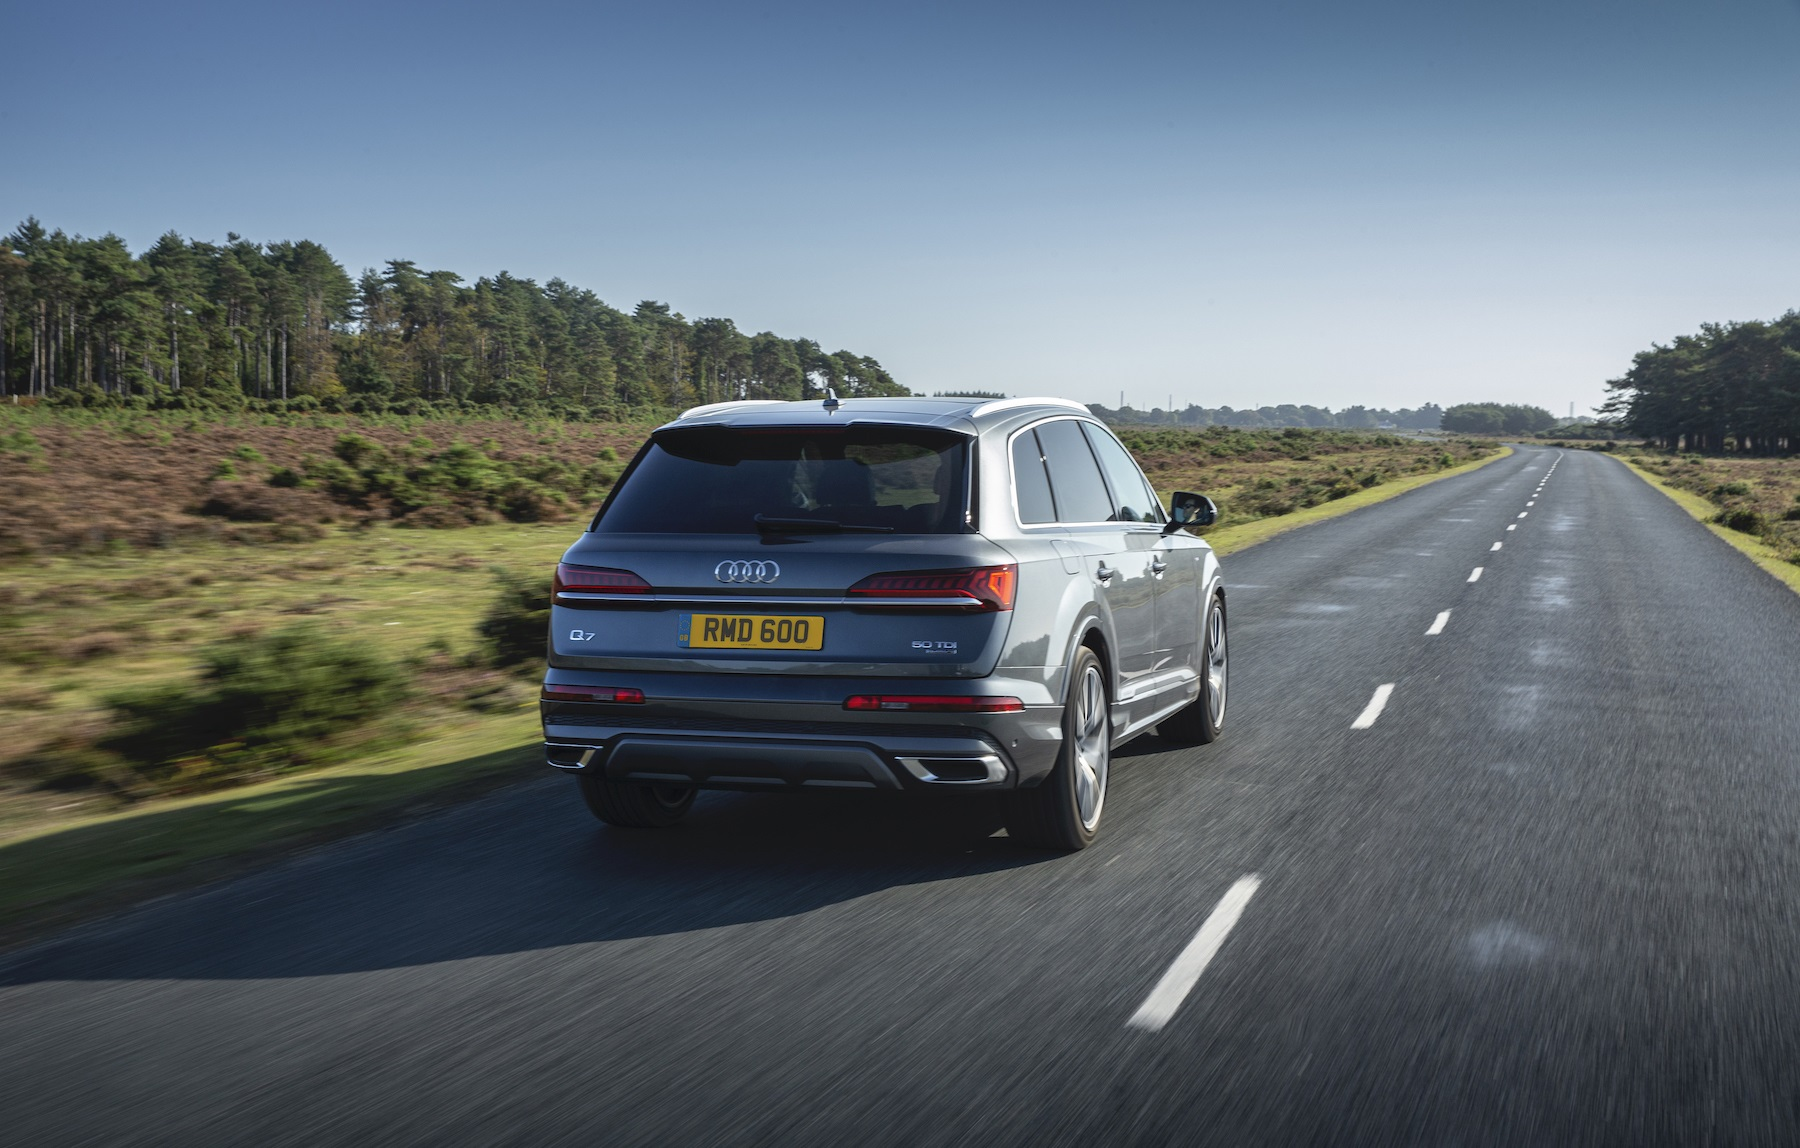 Grey Audi Q7 reas on the road